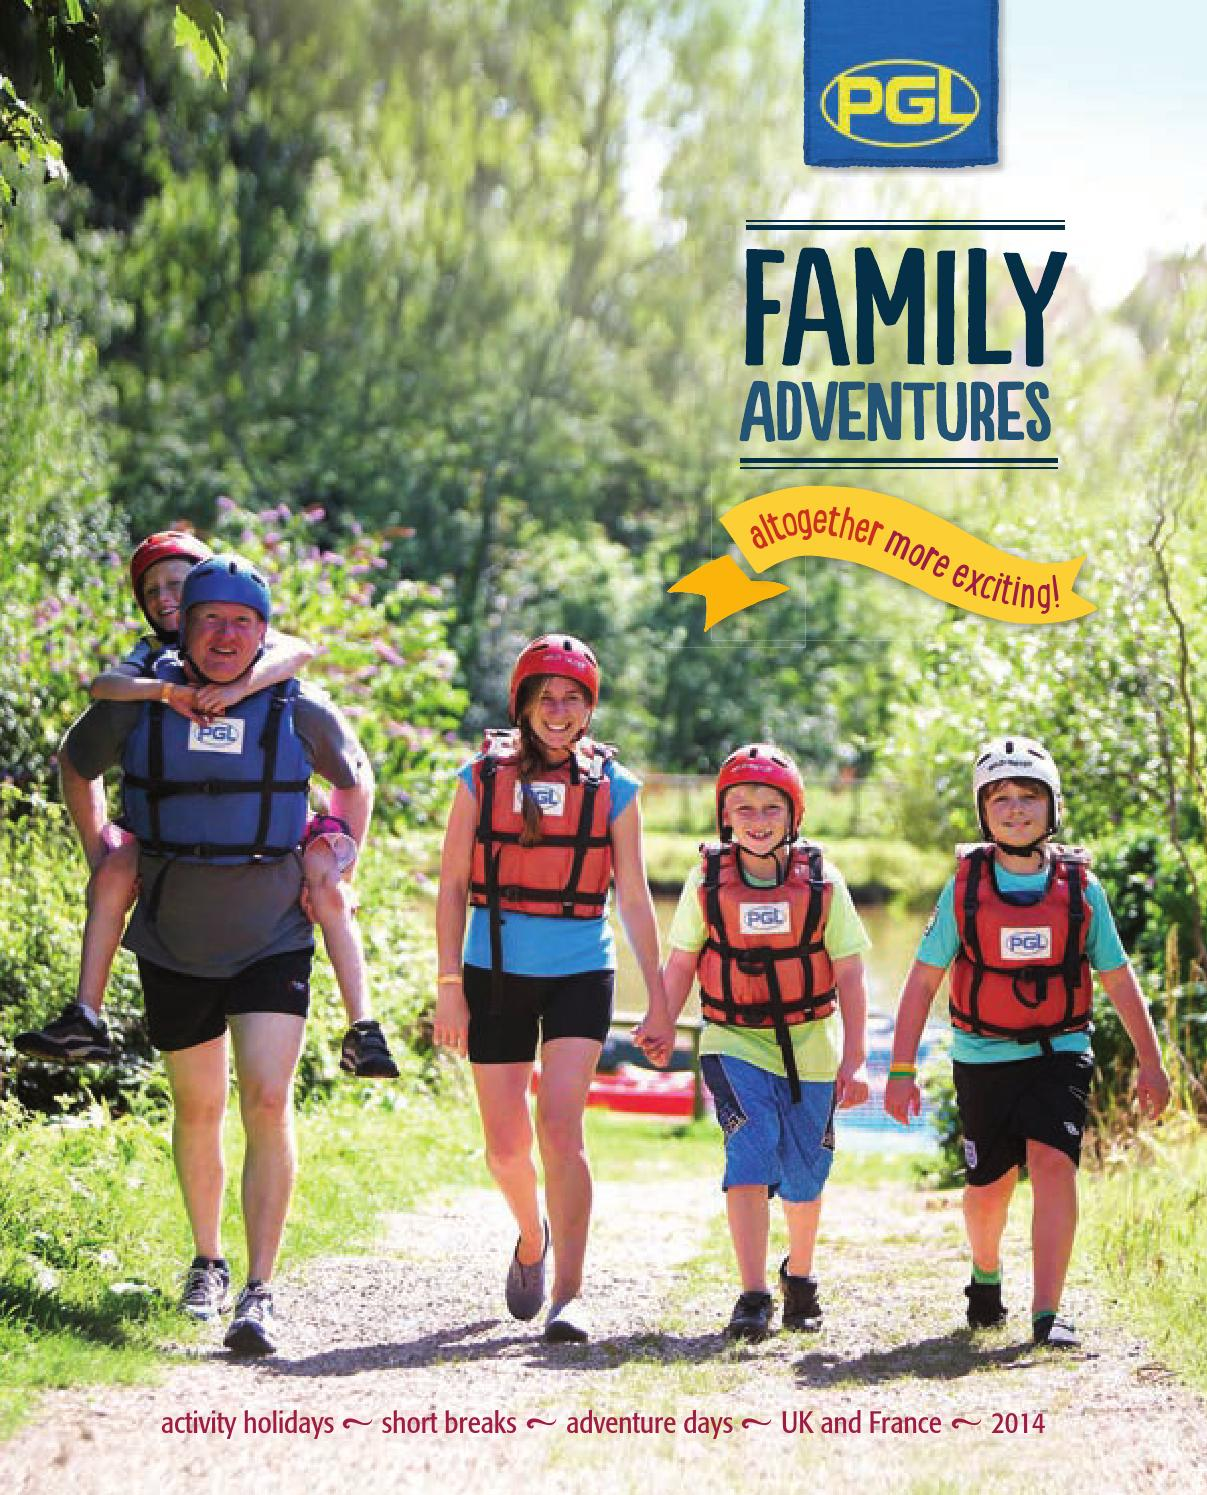 PGL Family Adventures 2014 Brochure by PGL Holidays  issuu